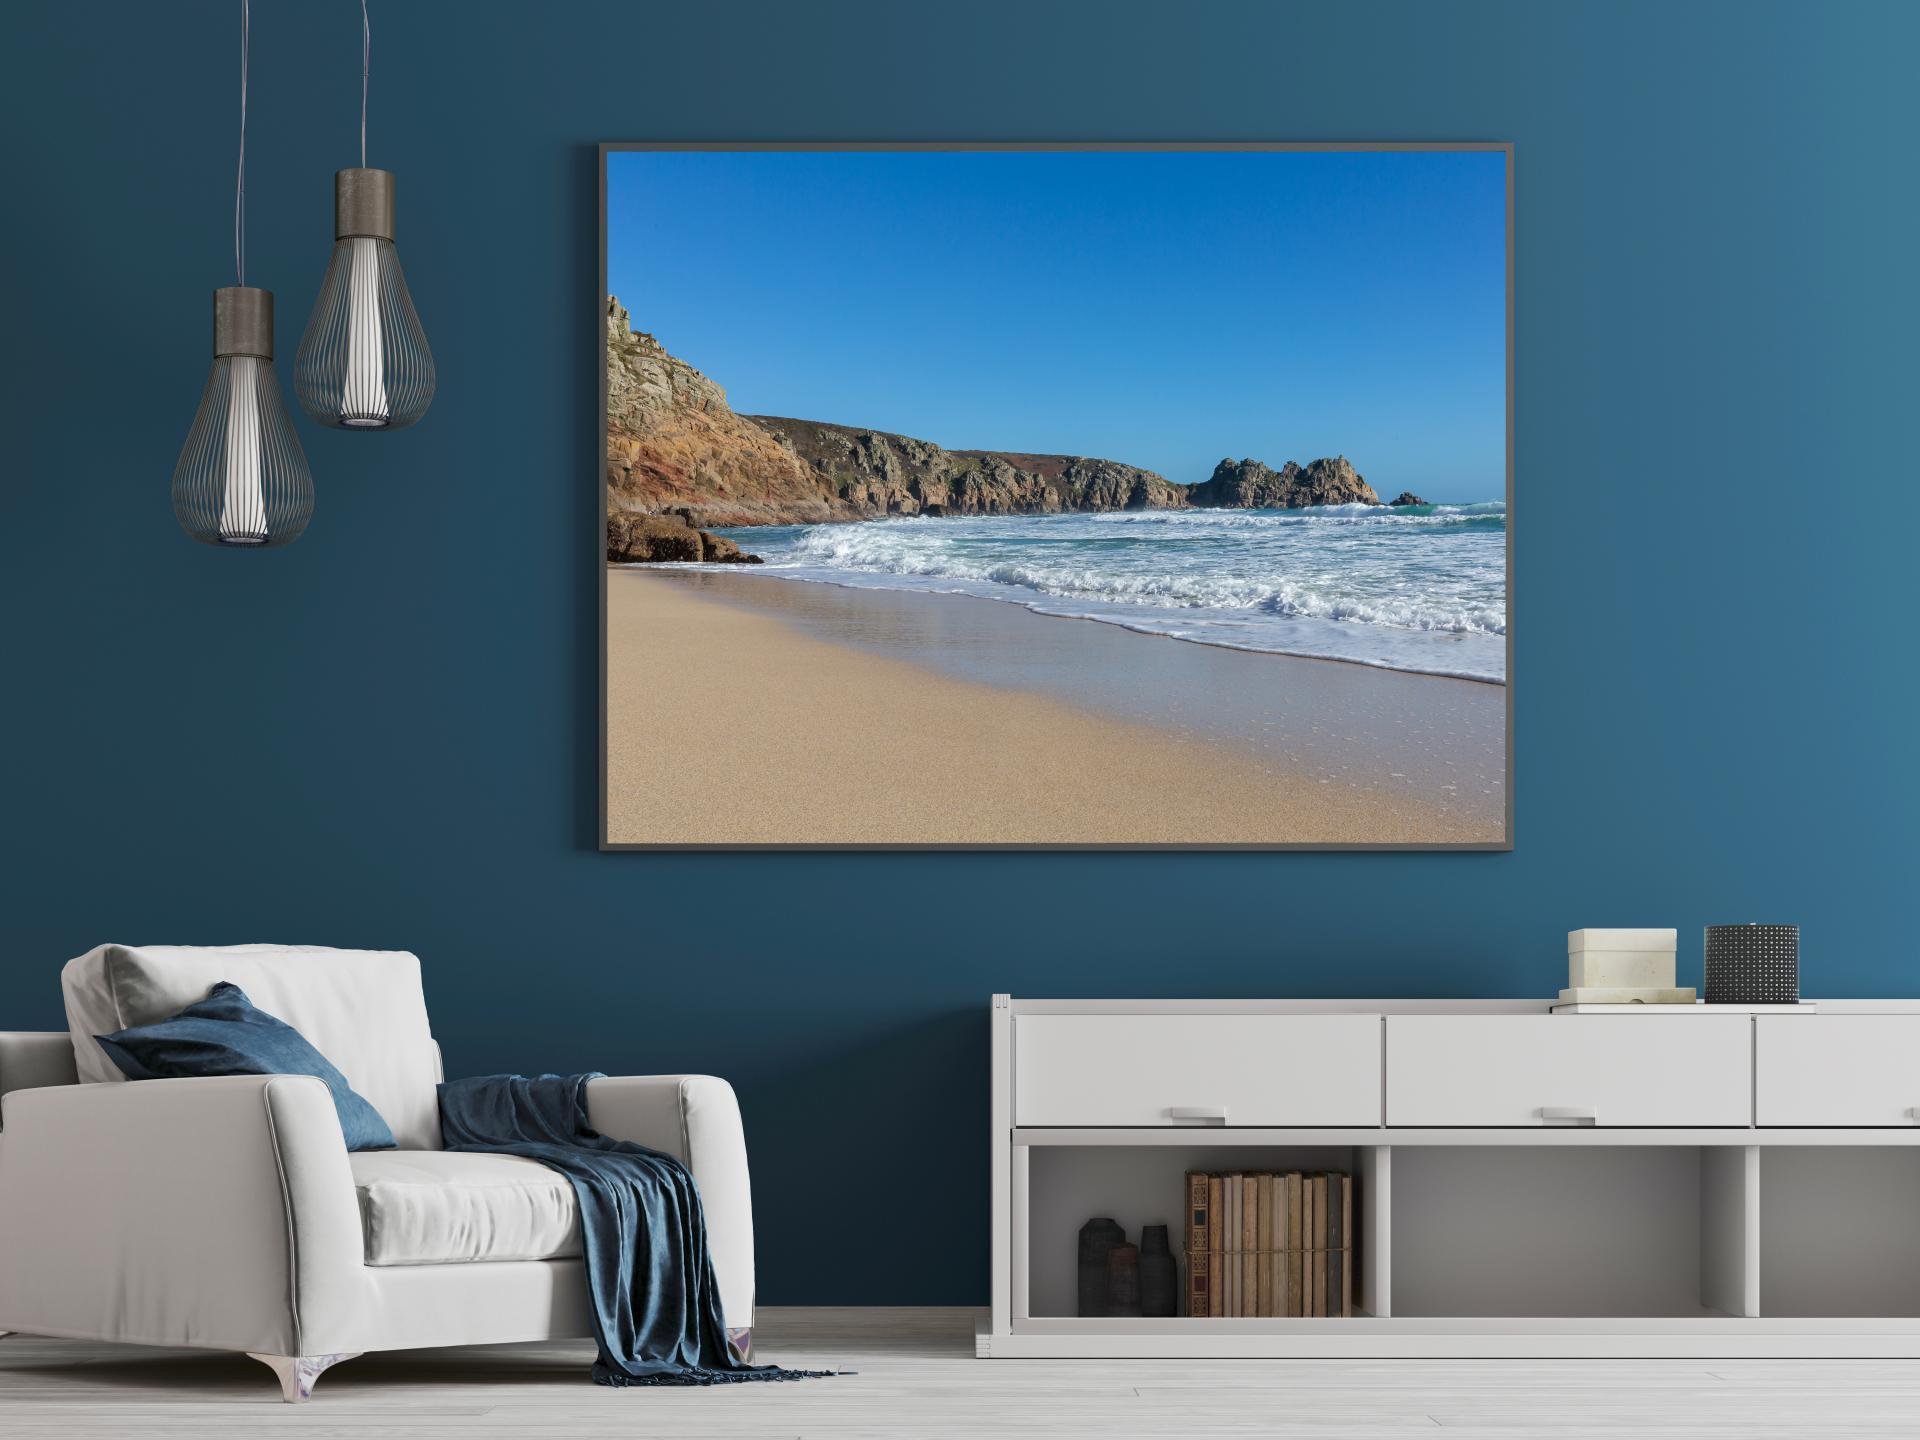 Waters edge at Porthcurno Beach, cornwall, with cliffs to the left curling around the image. Liane Ryan Photography